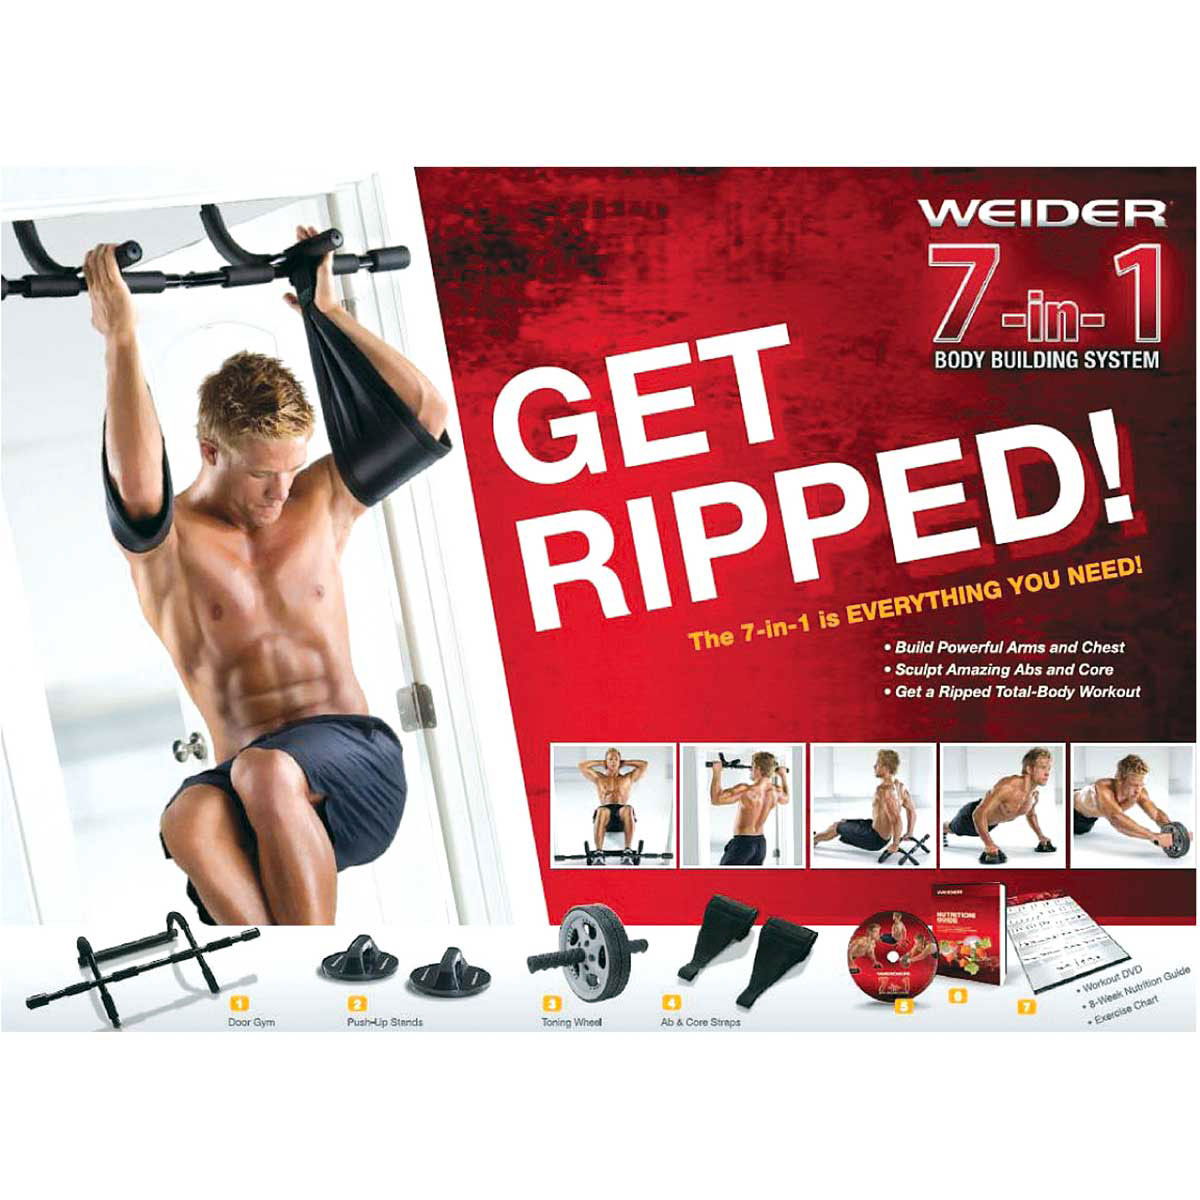 Weider 7-in-1 Home Gym Trainer System